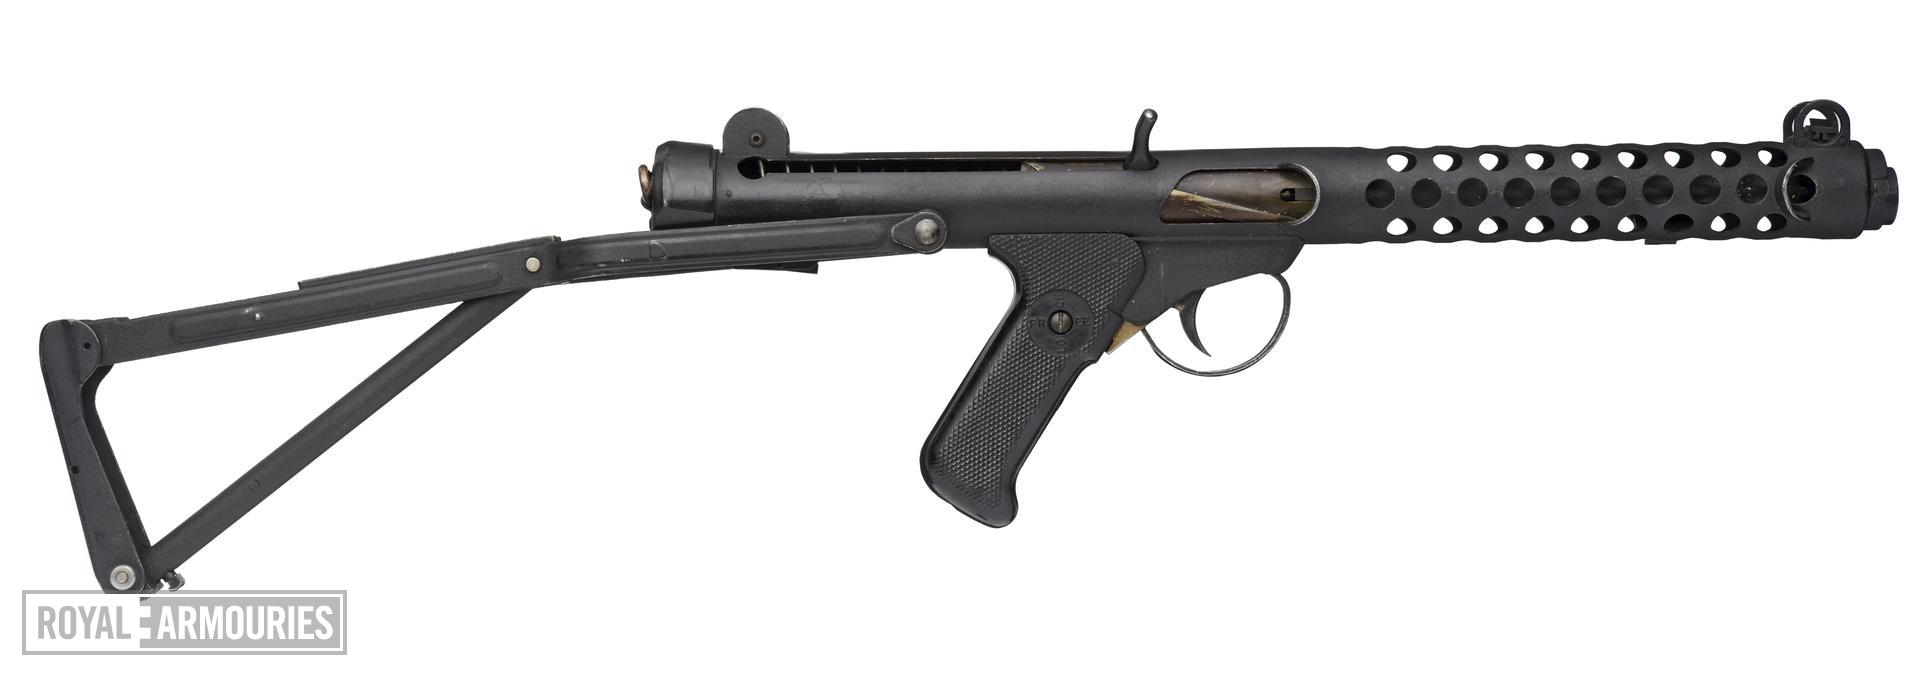 Centrefire automatic submachine gun - Sterling L2A1